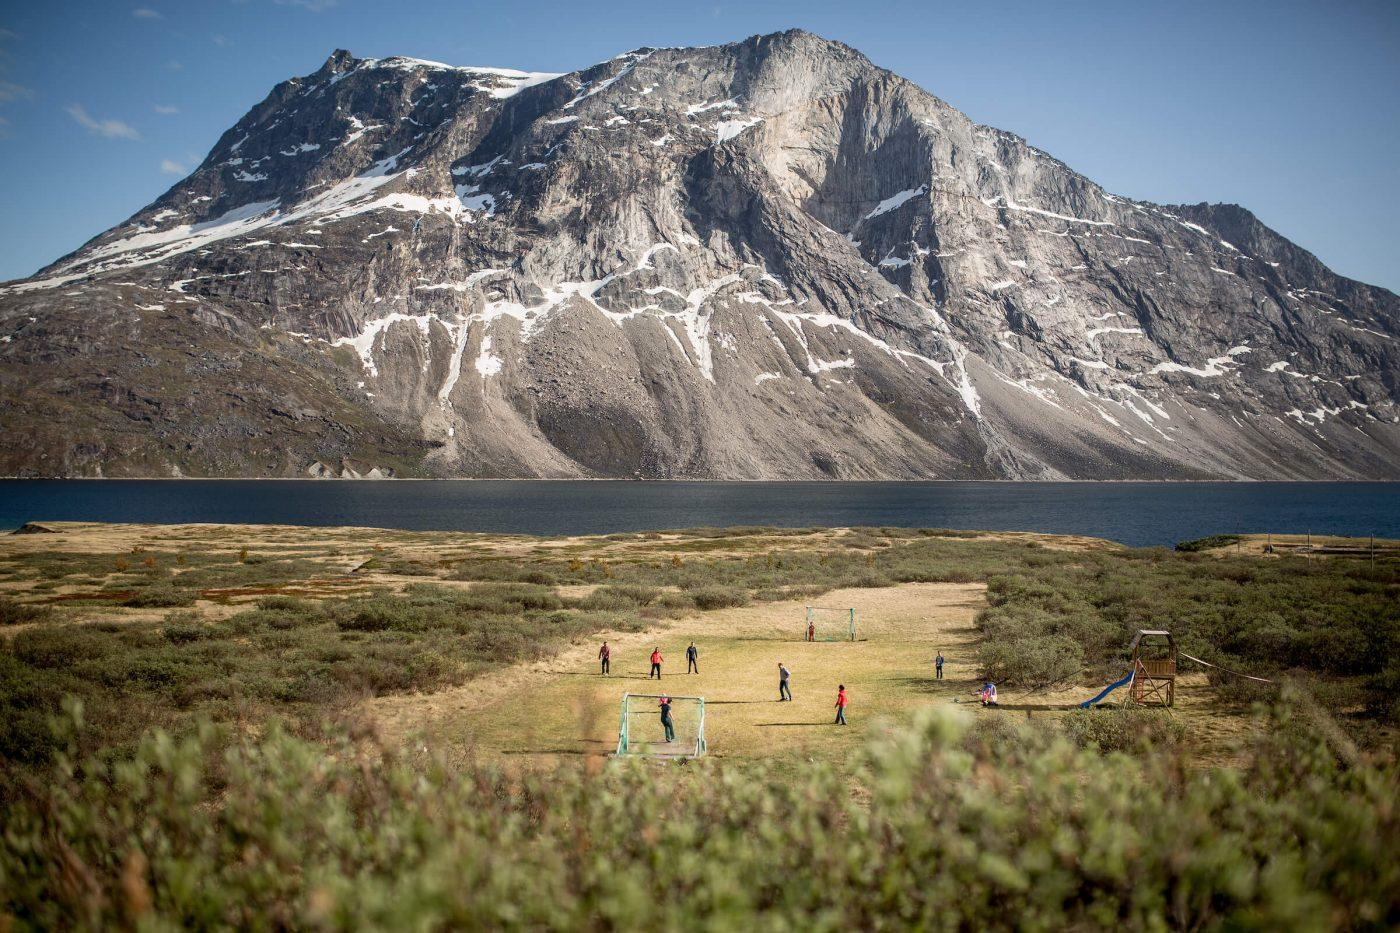 The backcountry soccer or football field at Qooqqut in the fjord near Nuuk in Greenland. Photo by Mads Pihl